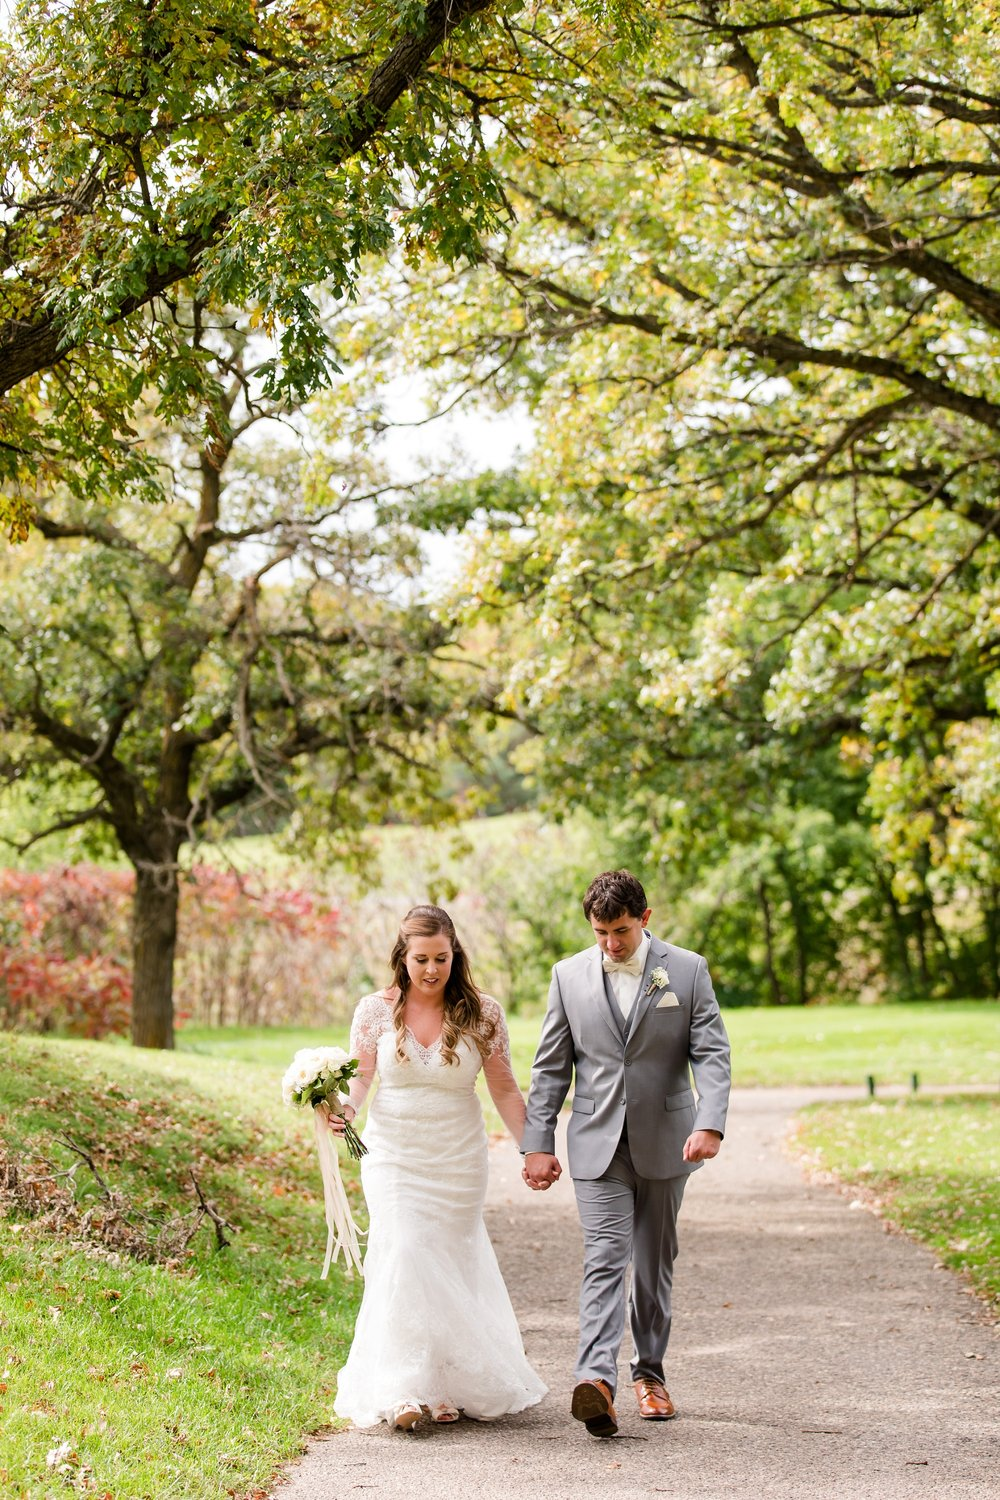 AmberLangerudPhotography_Fair Hills Resort Lakeside Wedding in Minnesota_3430.jpg